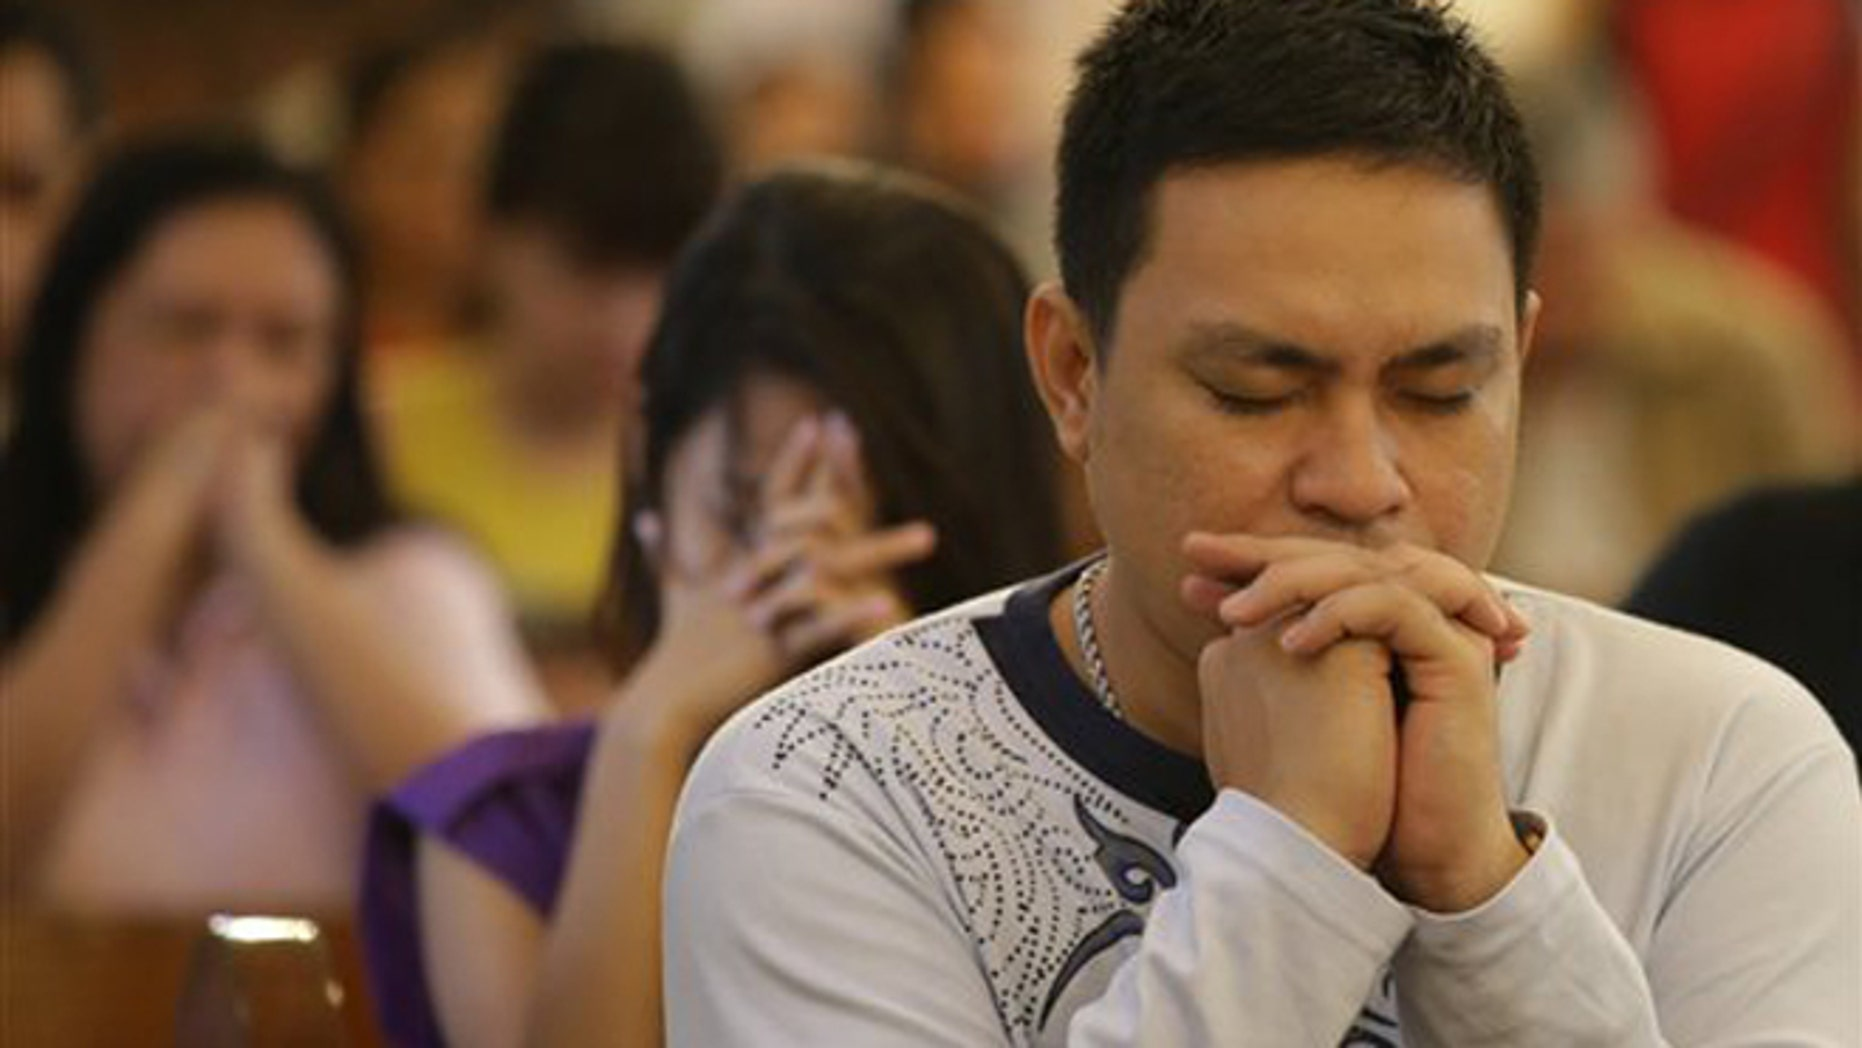 "CORRECTS MONTH- Filipino Catholics pray during a mass at the Our Lady of Remedies Parish Church in Manila, Philippines Sunday, Sept. 22, 2013. Catholics around the globe are expressing mixed but mostly positive reactions to Pope Francis' recent remarks that the church has become too focused on ""small minded rules"" on hot-button issues like homosexuality and abortion. (AP Photo/Aaron Favila)"